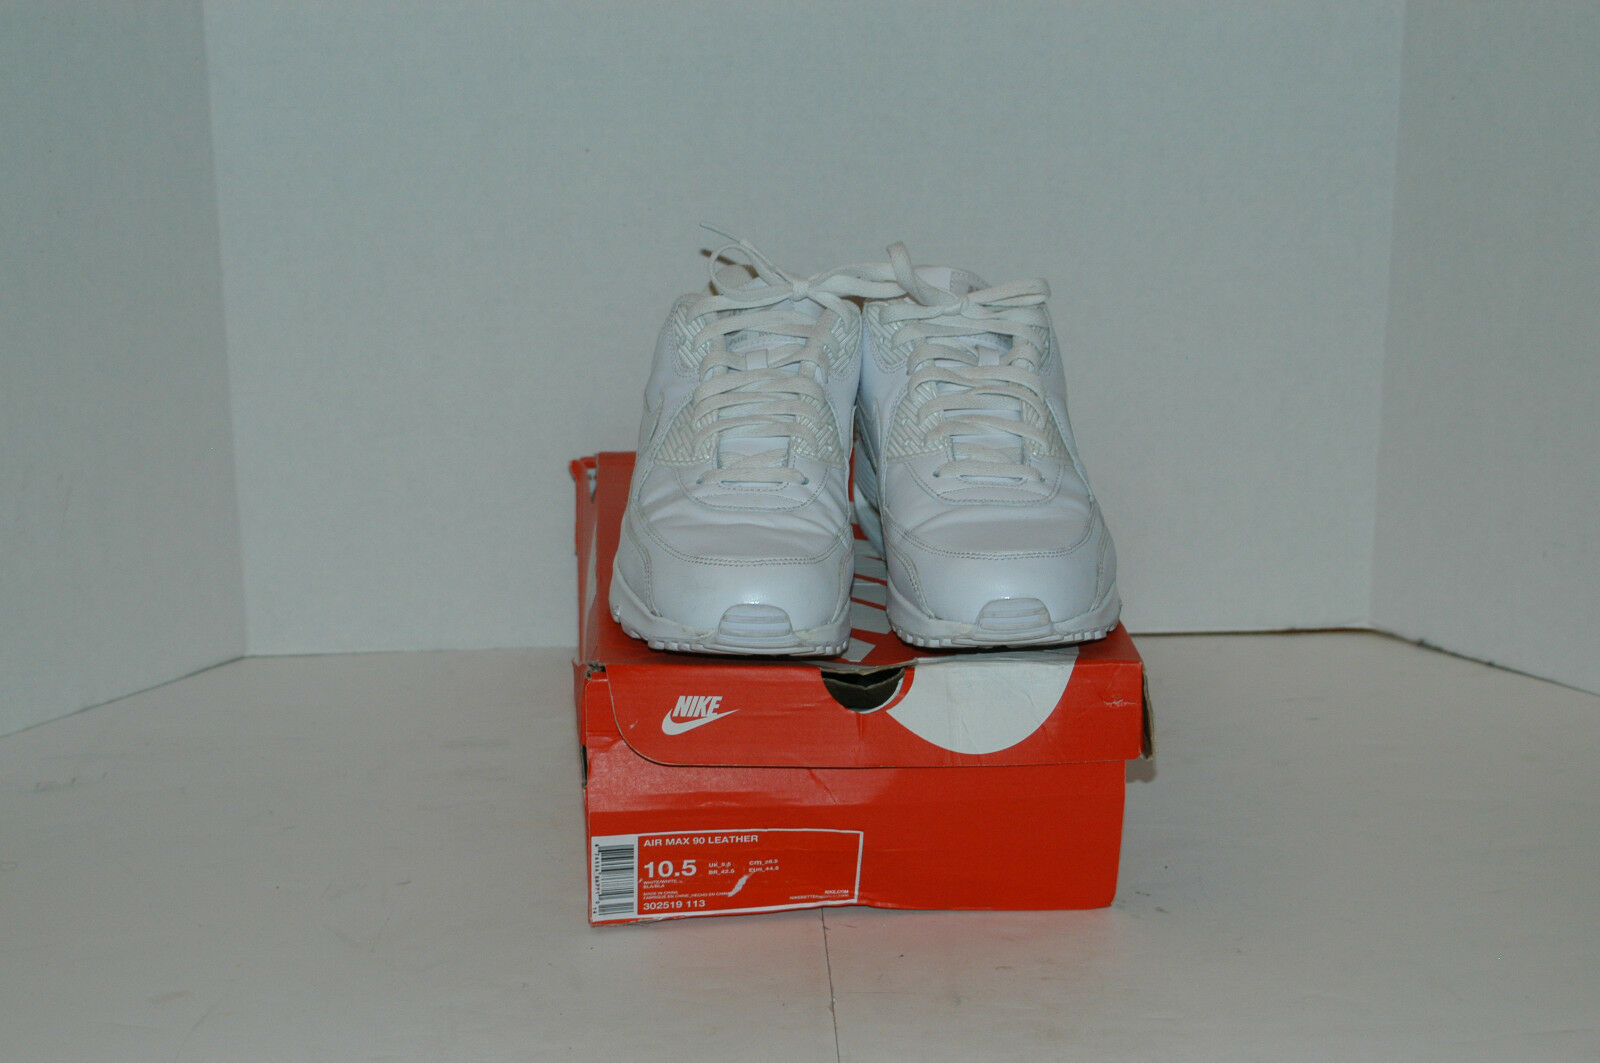 [39] Nike Air Max 90 Leather White Size 10.5